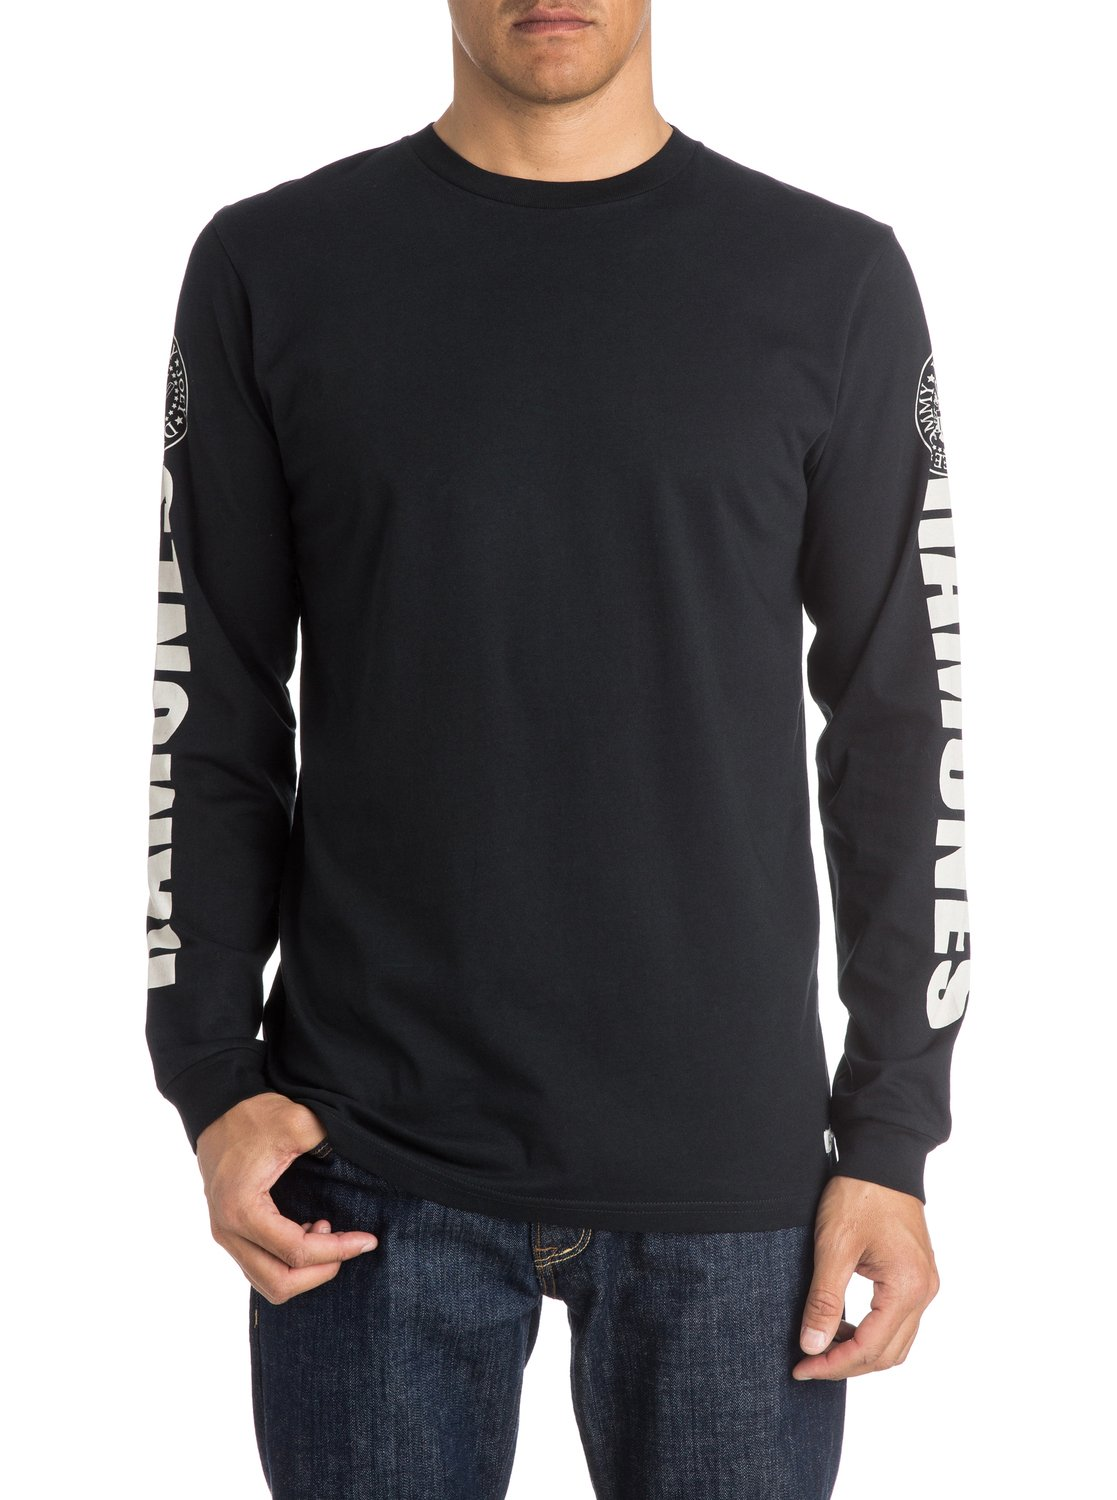 R13 Long Sleeve Boat Neck in Ecru with Black Ramones Stripe features a relaxed fit, long sleeve, striped tee shirt with boat neck; Shop R13 at distrib-u5b2od.ga JavaScript seems .